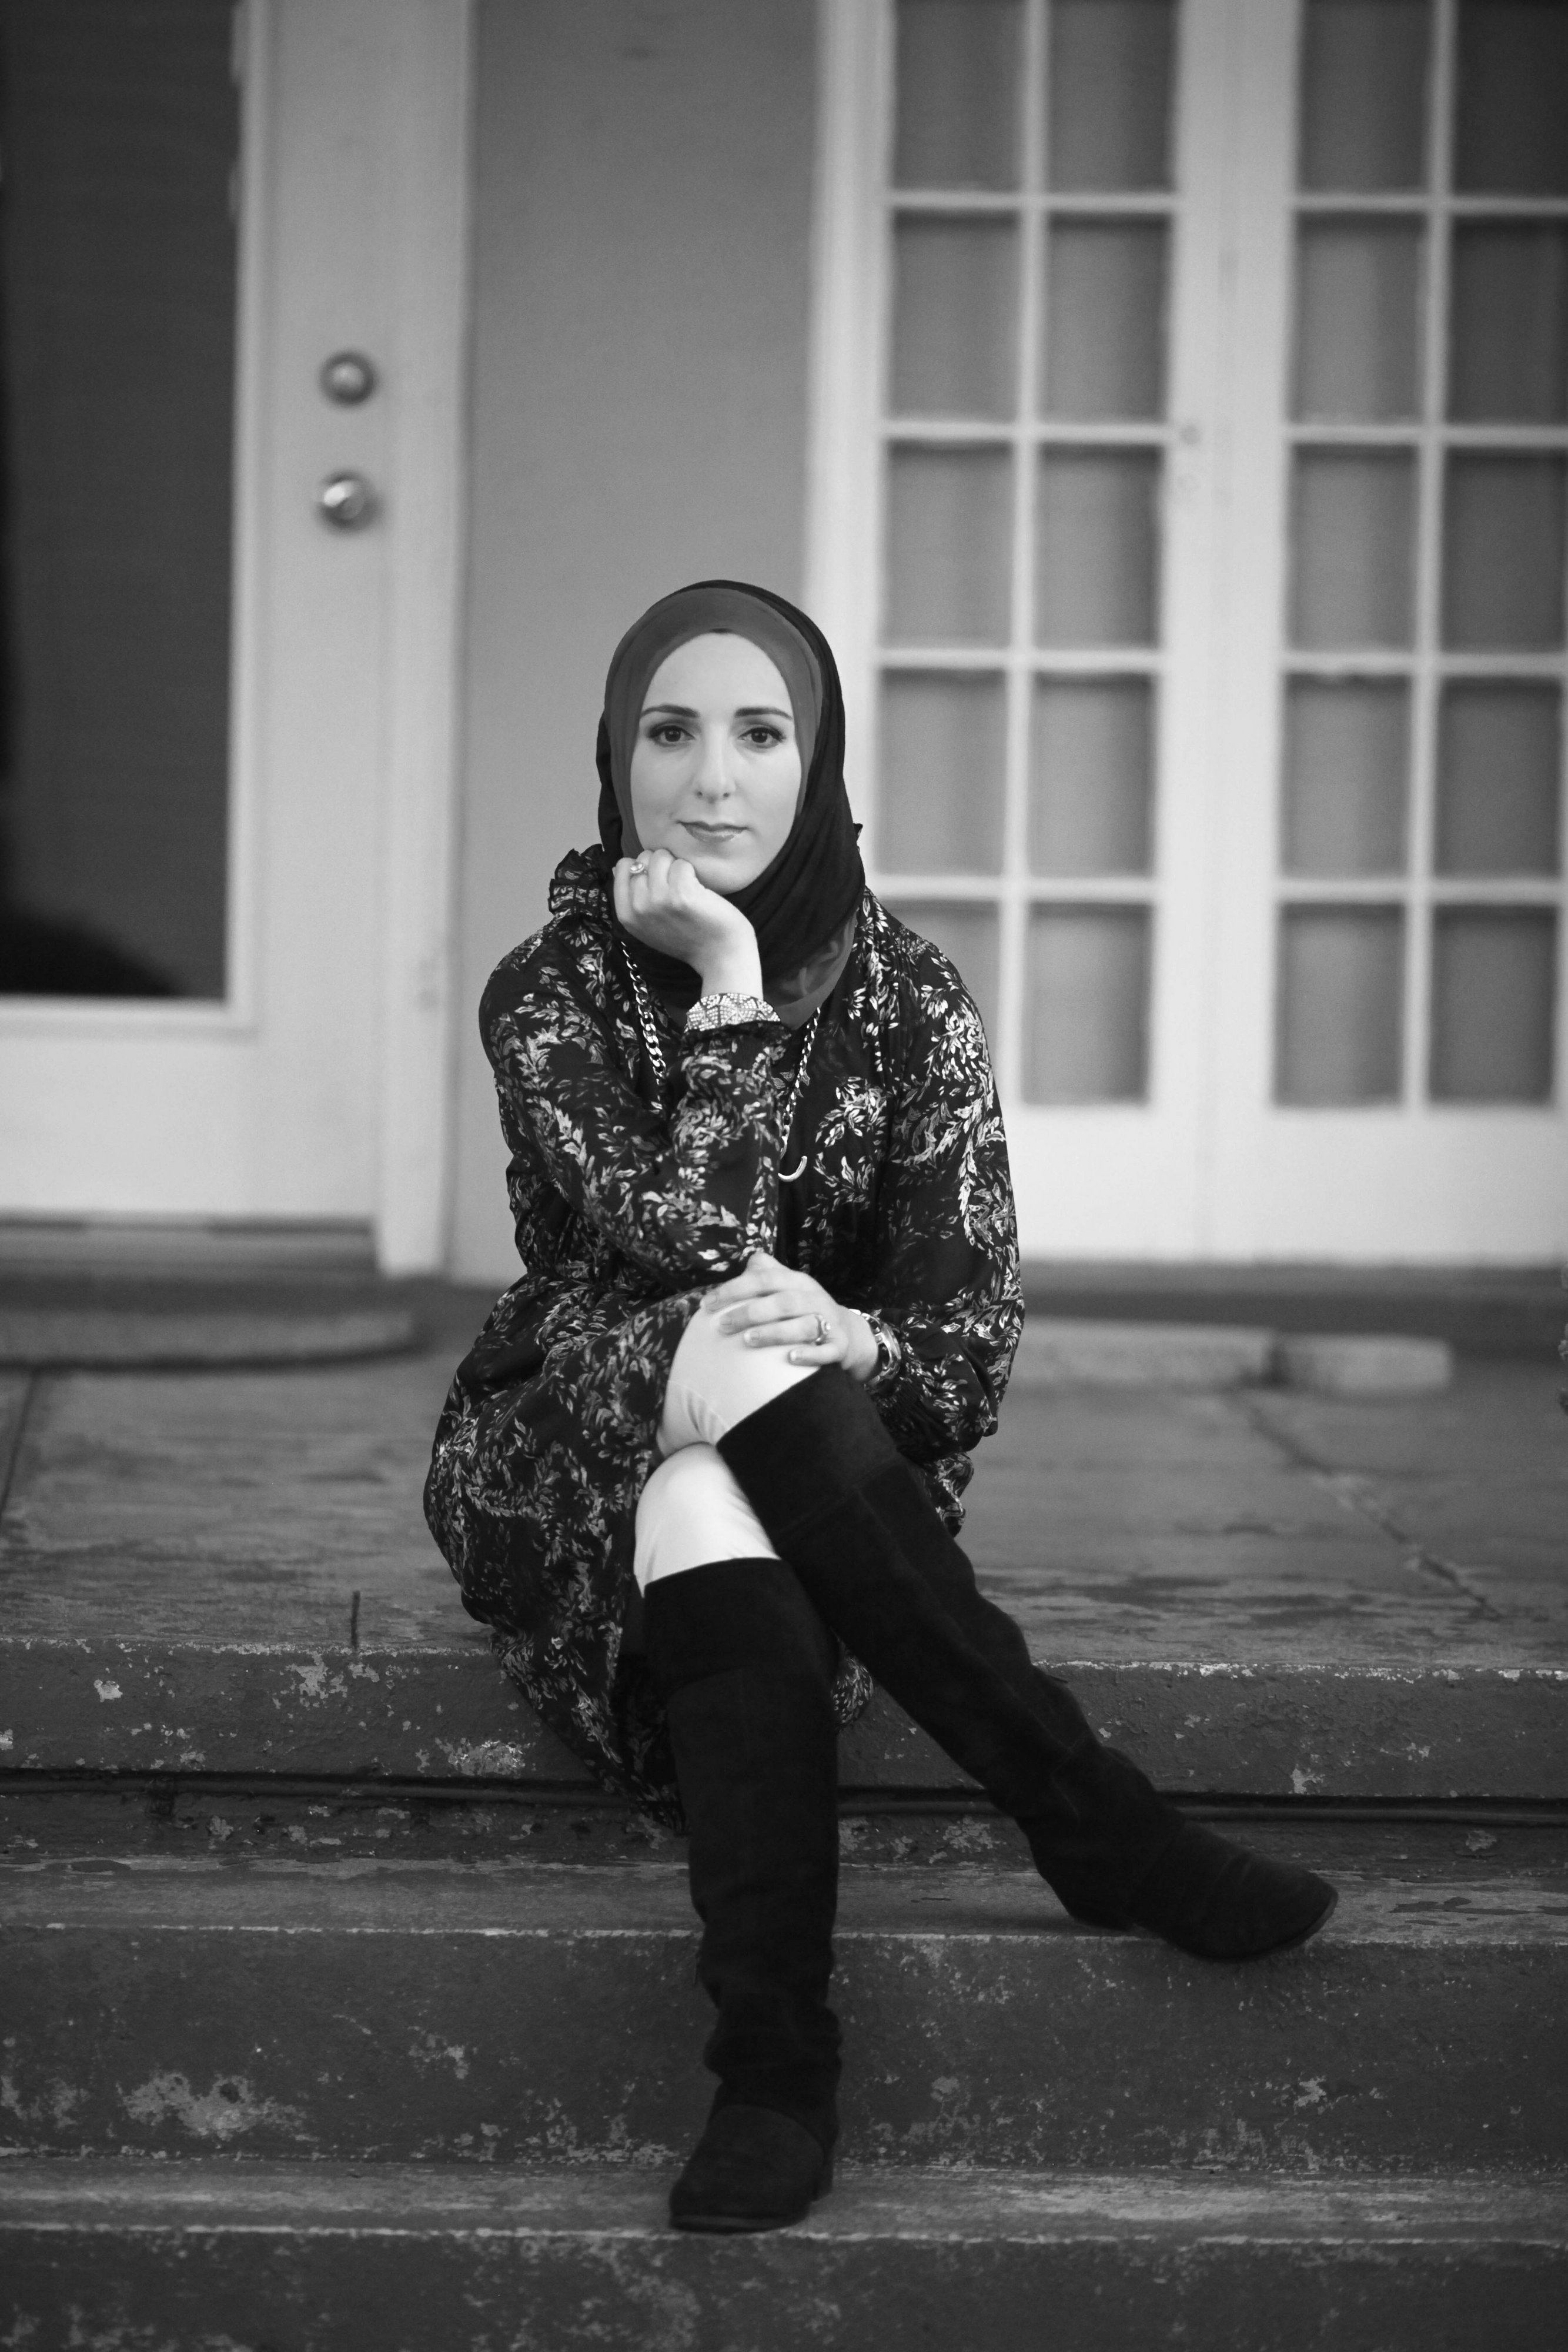 black-and-white photo of a person seated on steps leading up to a house. The person wears knee-high, black-colored boots, light-colored pants, a floral-patterned dress/tunic, a headscarf and a necklace, bracelet and ring. The person looks at the camera, with legs crossed and chin resting in hand.